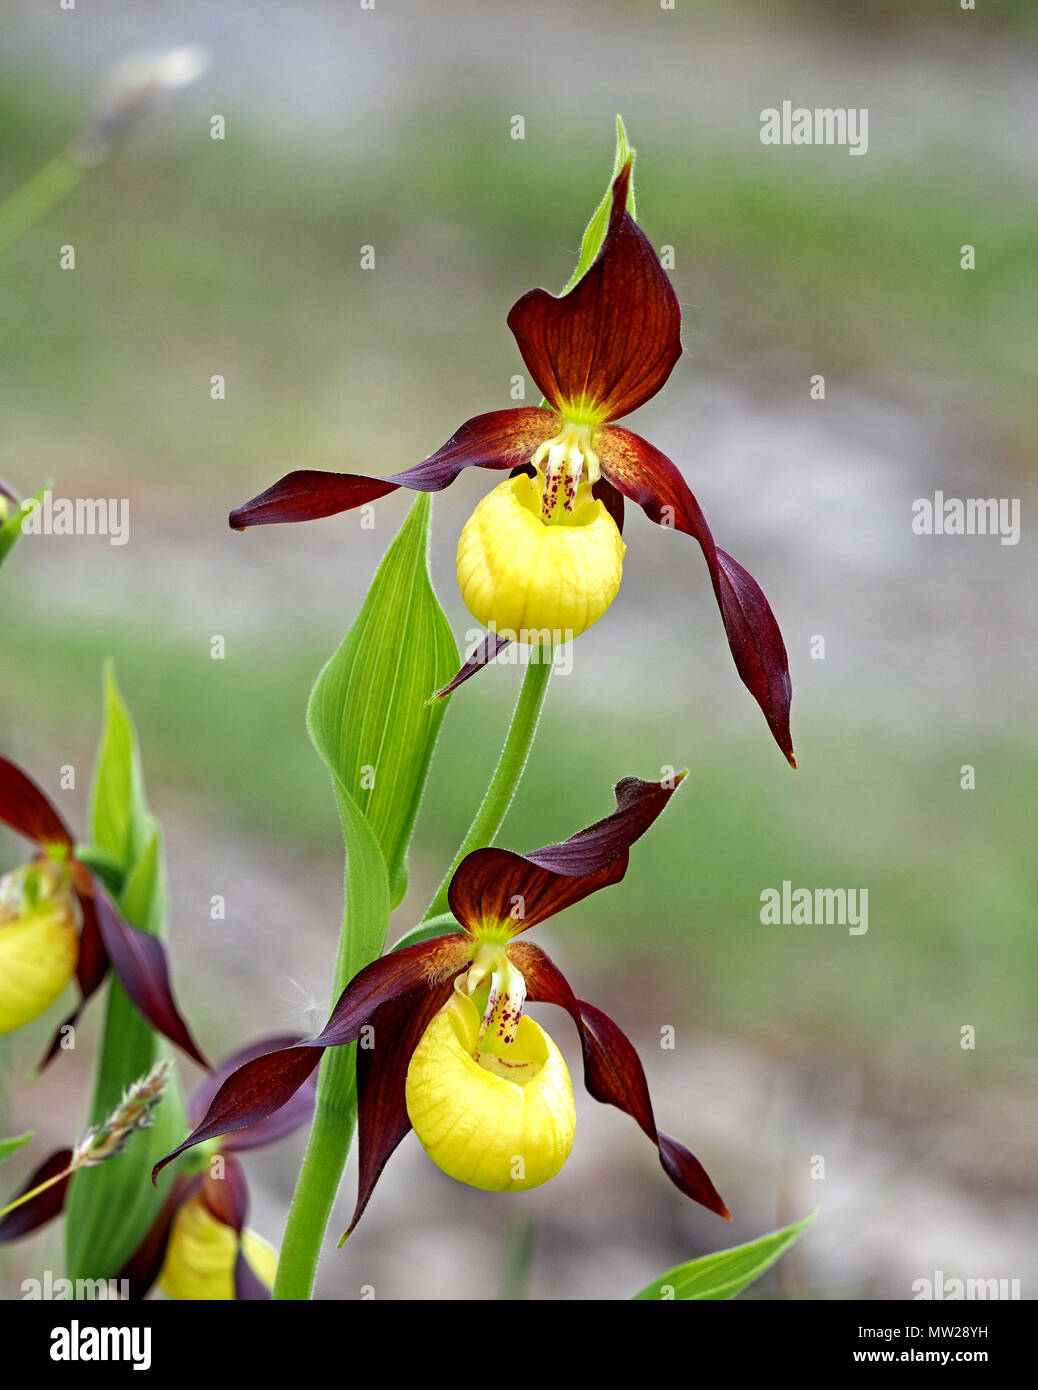 flowering Lady's Slipper Orchid (Cypripedium calceolus) at nature reserve in North of England following successful re-introduction project - Stock Image